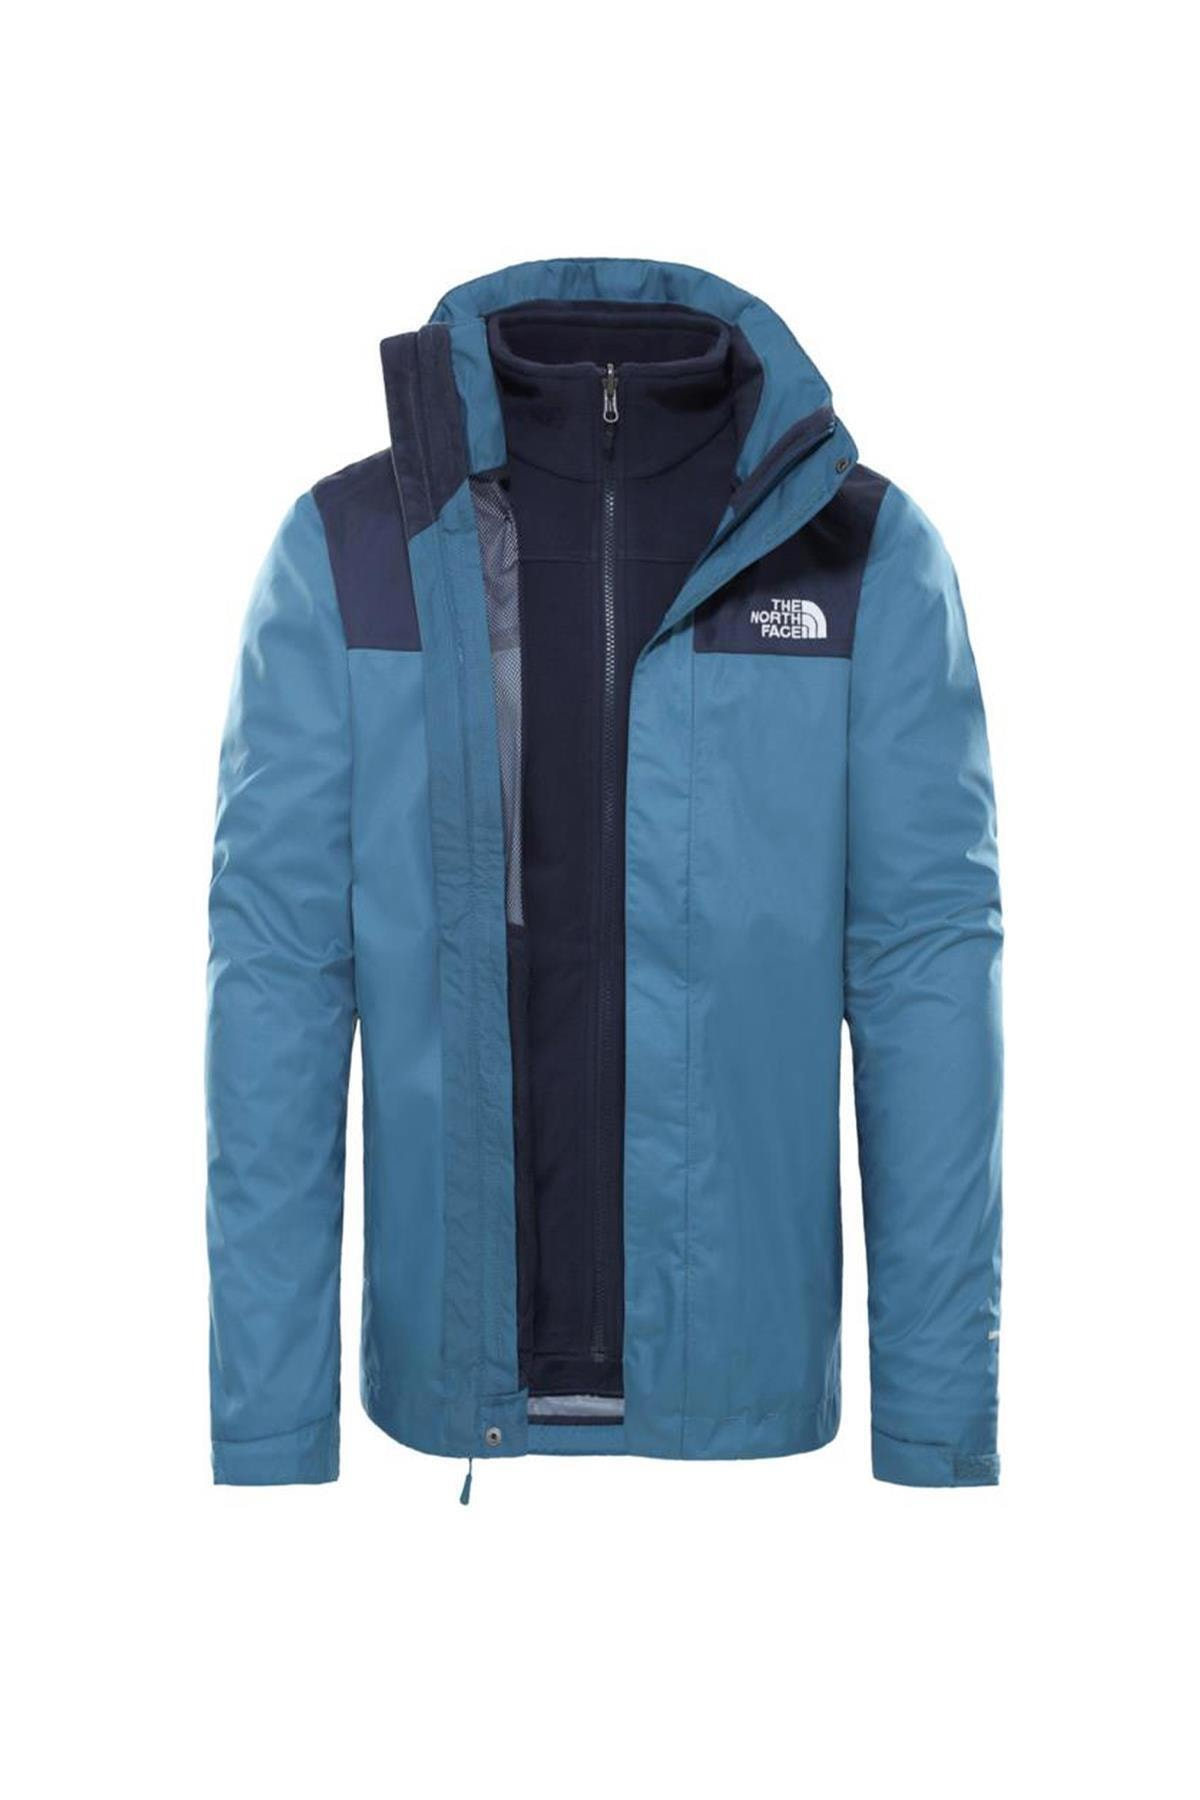 THE NORTH FACE M EVOLVE II TRI JKT NF00CG55SF61 1